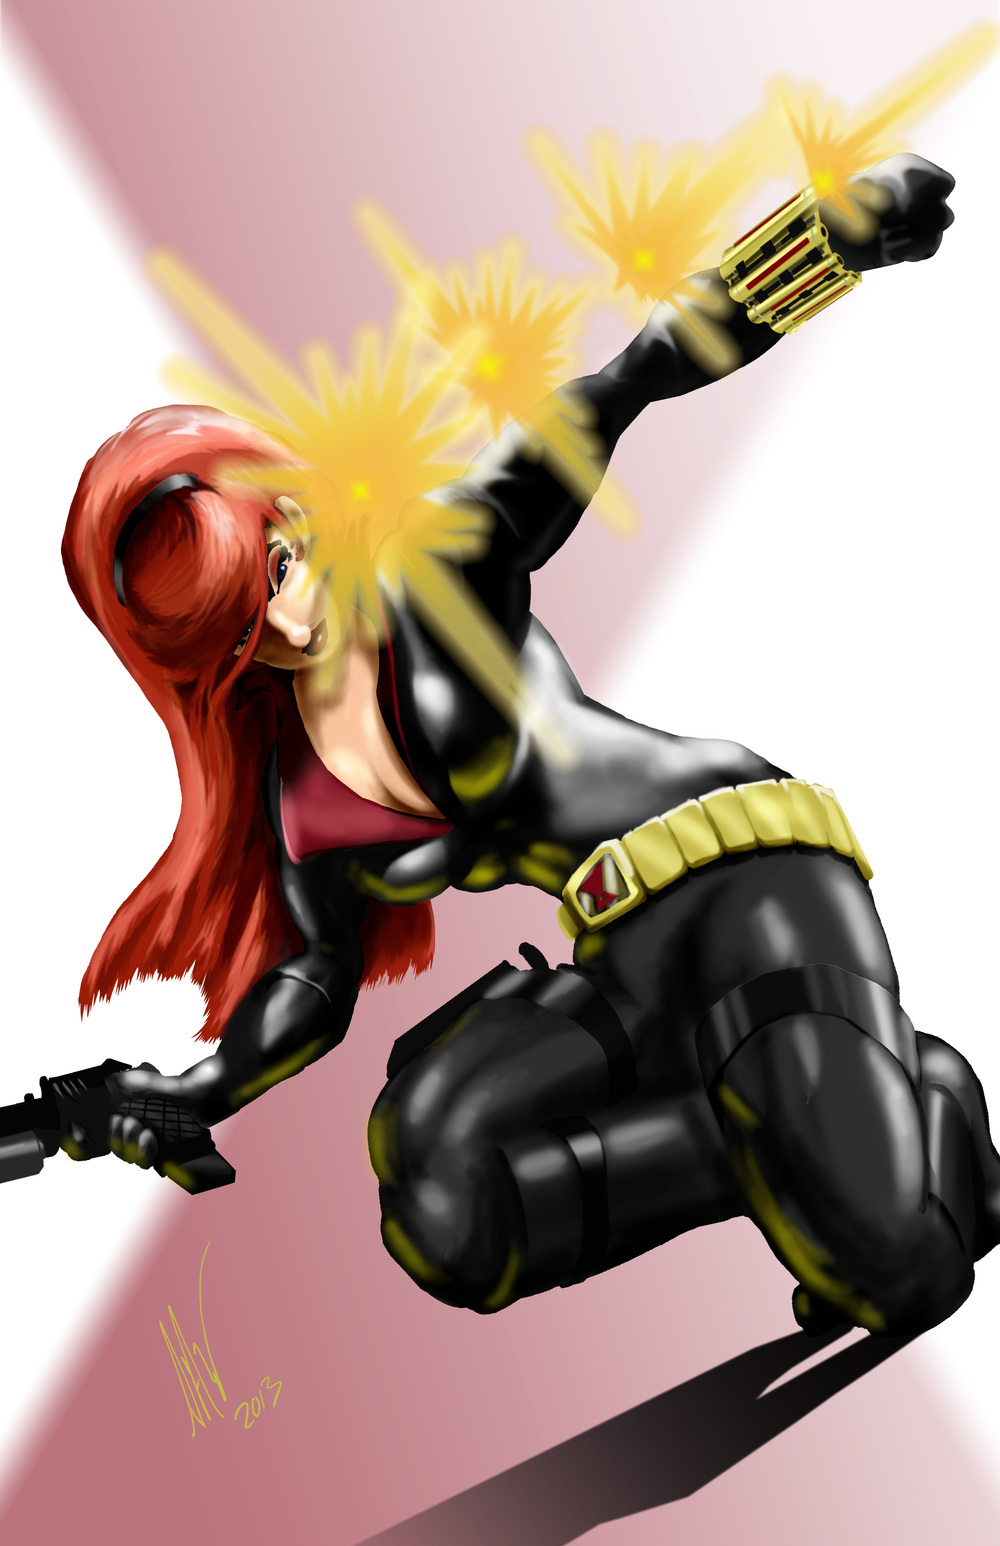 Black Widow-Super Spy 11x17.jpg